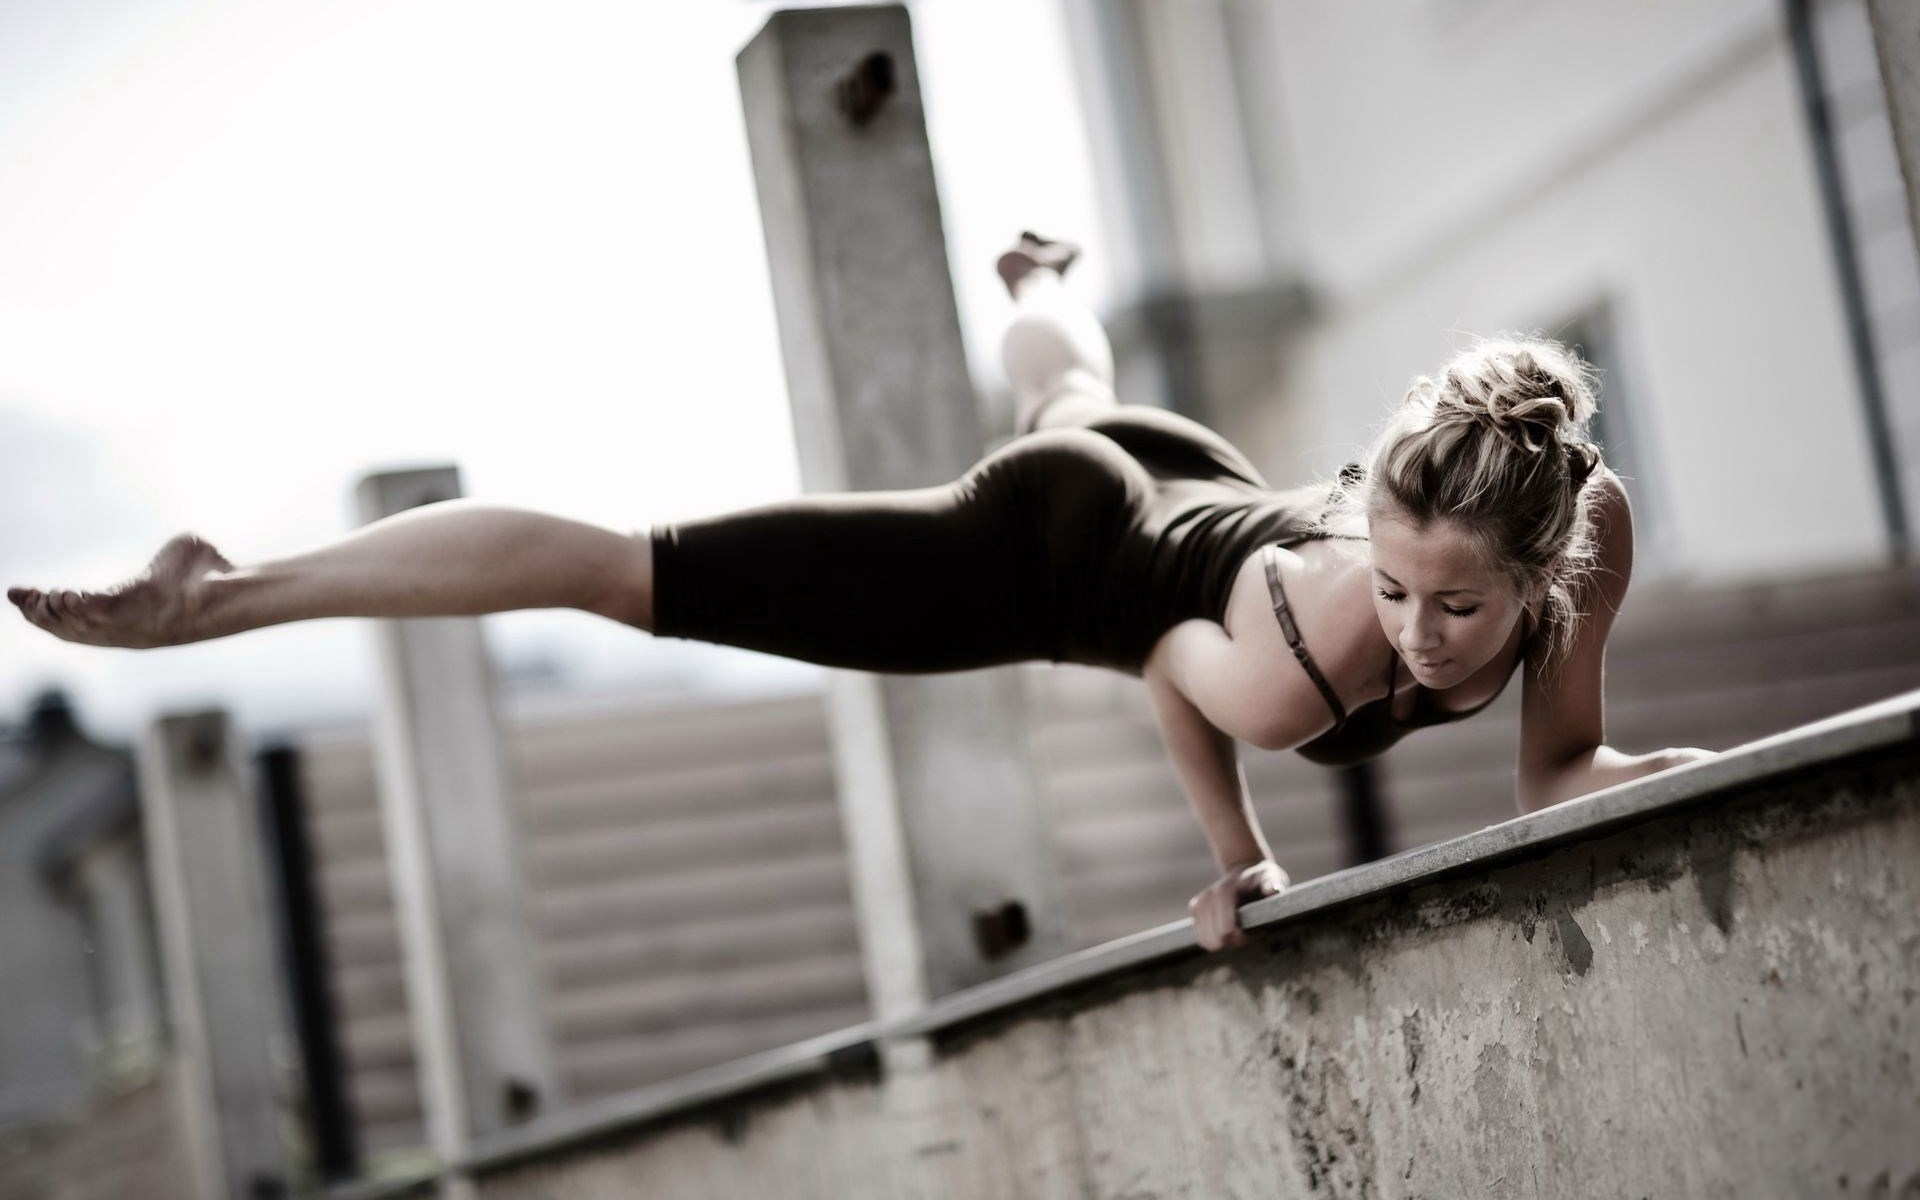 _Sporty_girl_at_a_construction_site_054516_